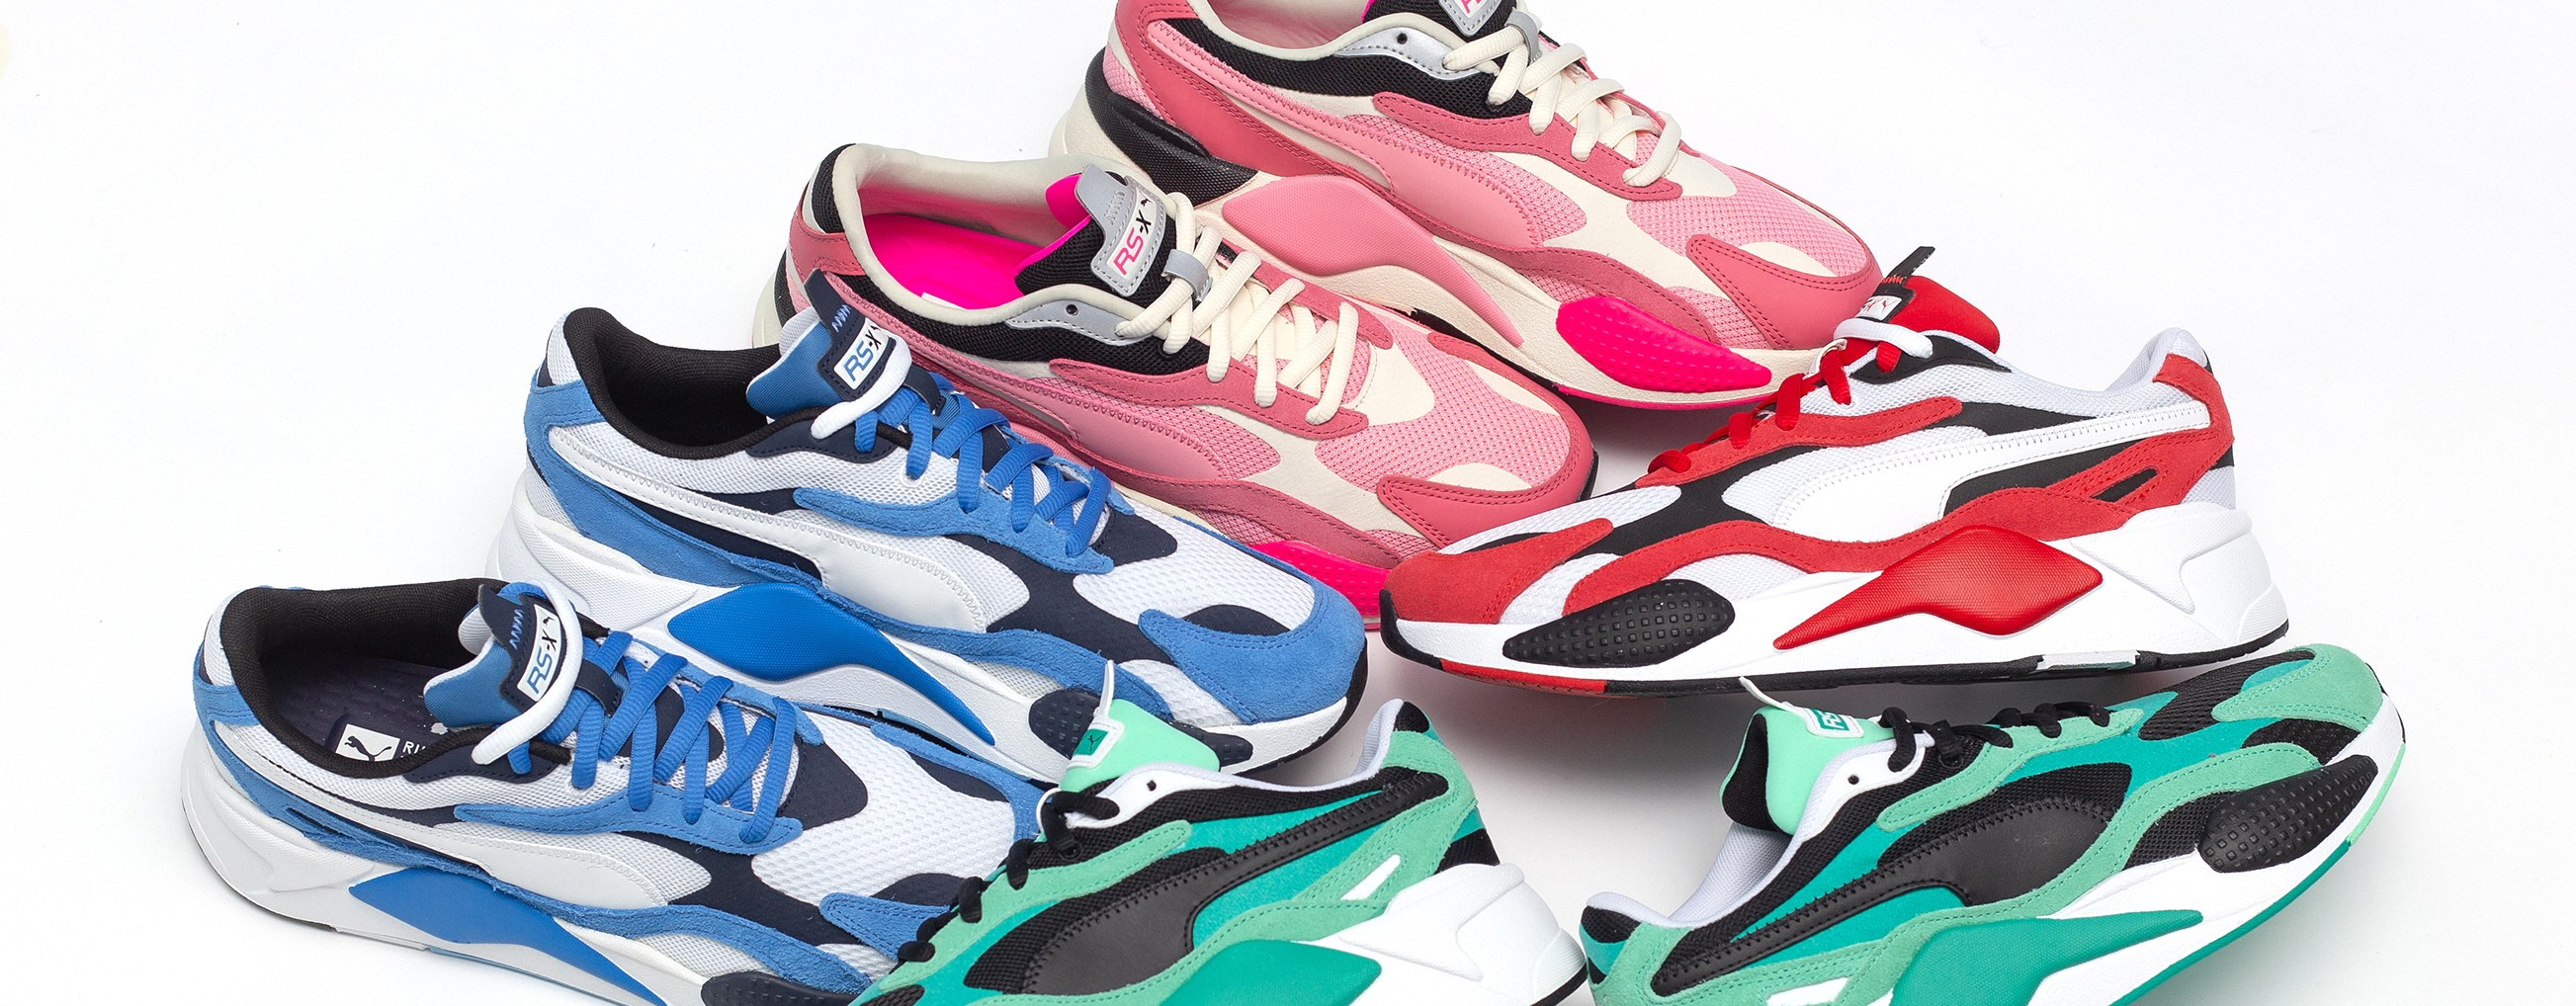 Puma RS-X New Releases